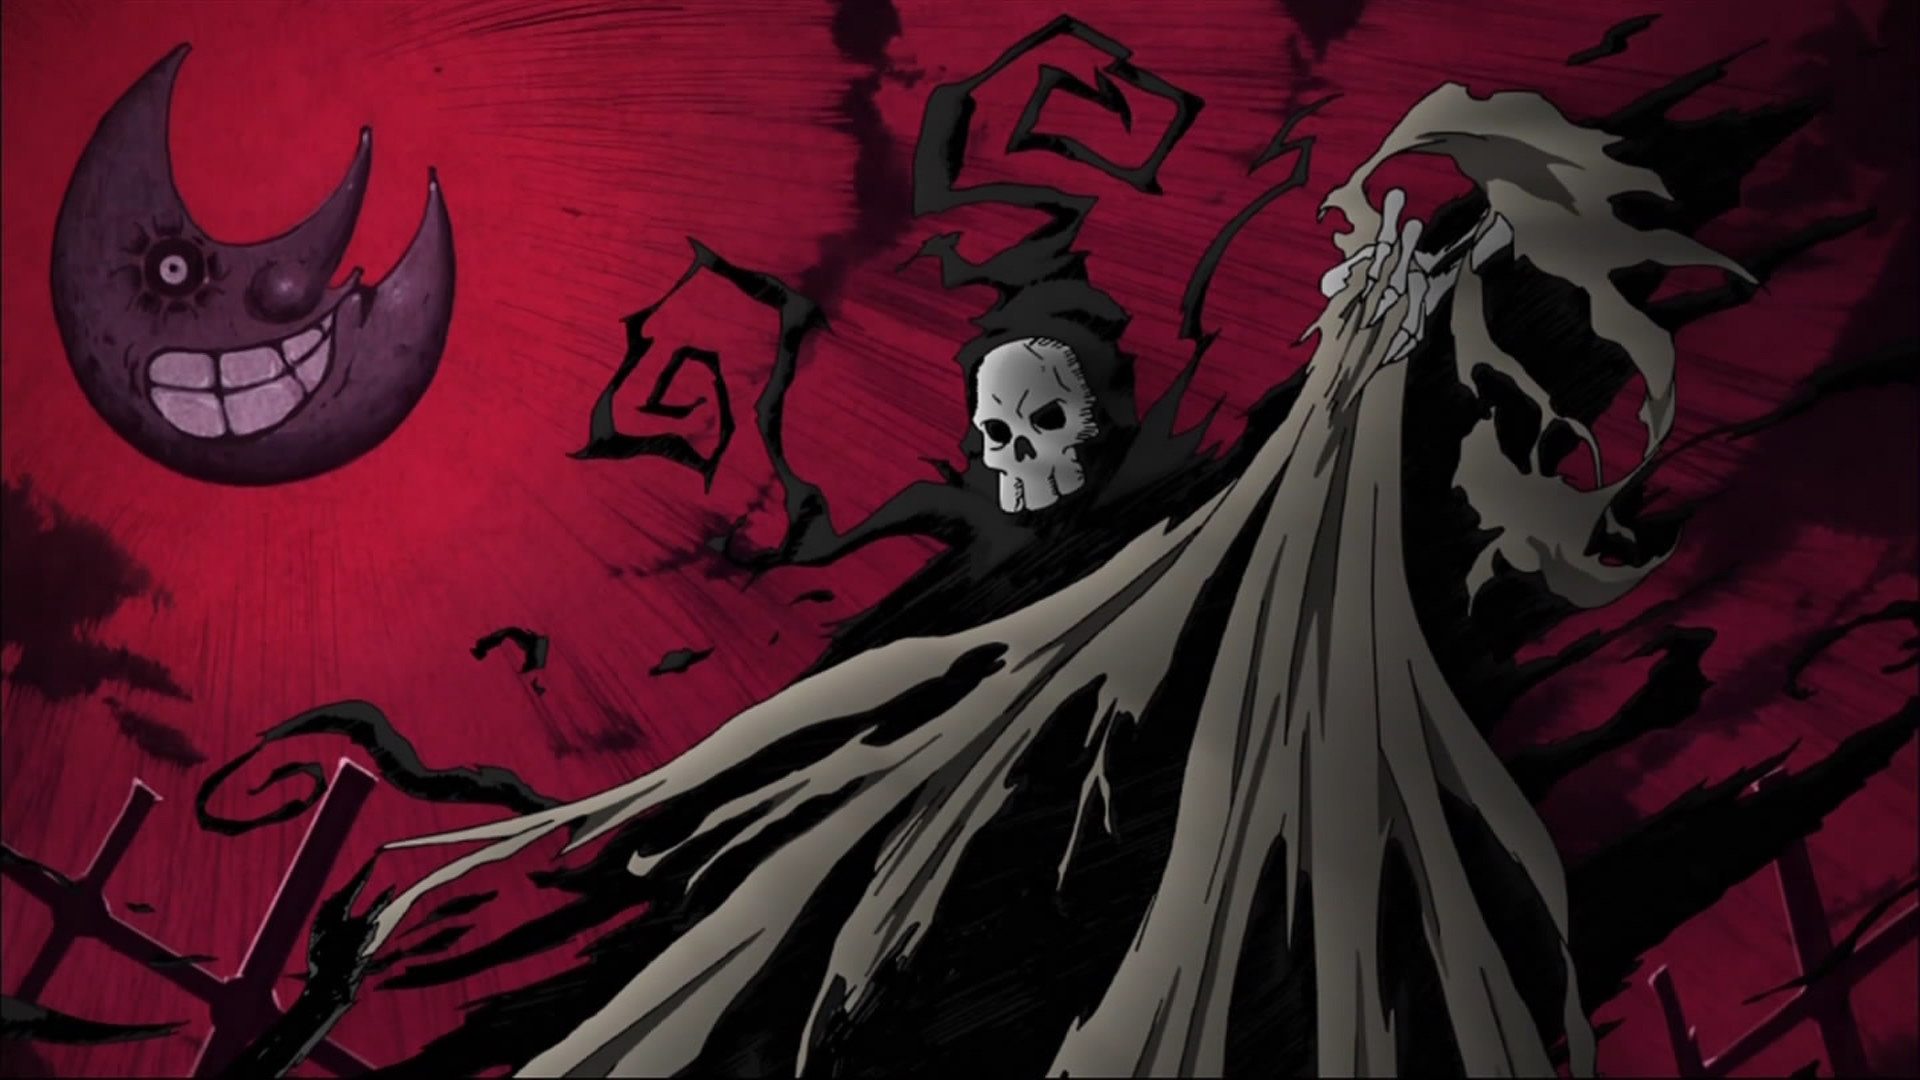 Res: 1920x1080, Soul Eater Wallpapers 7 - 1920 X 1080